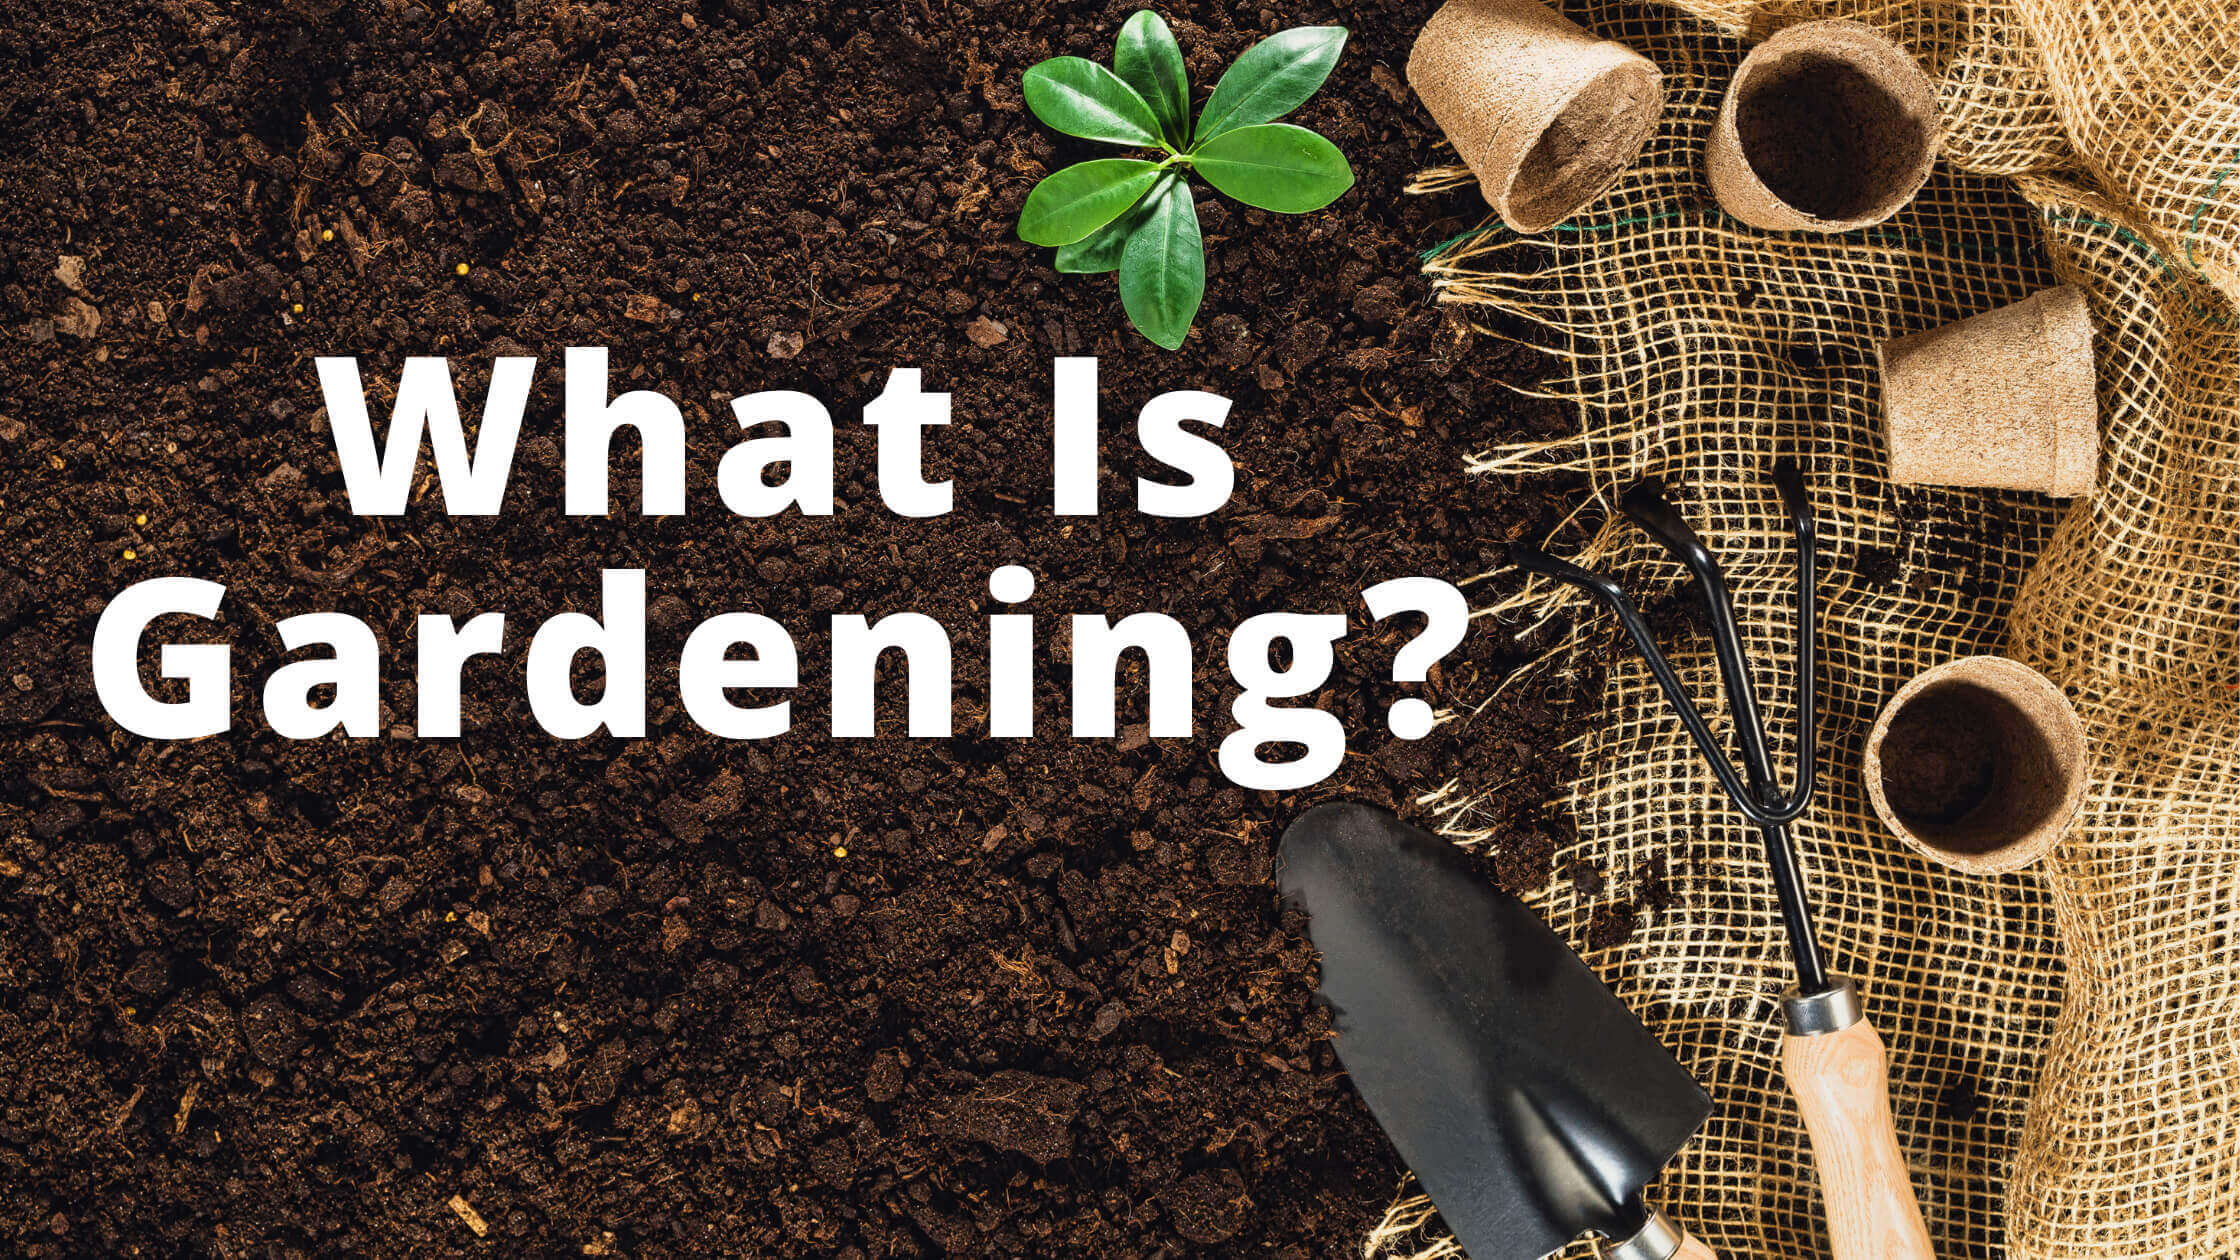 What Is Gardening